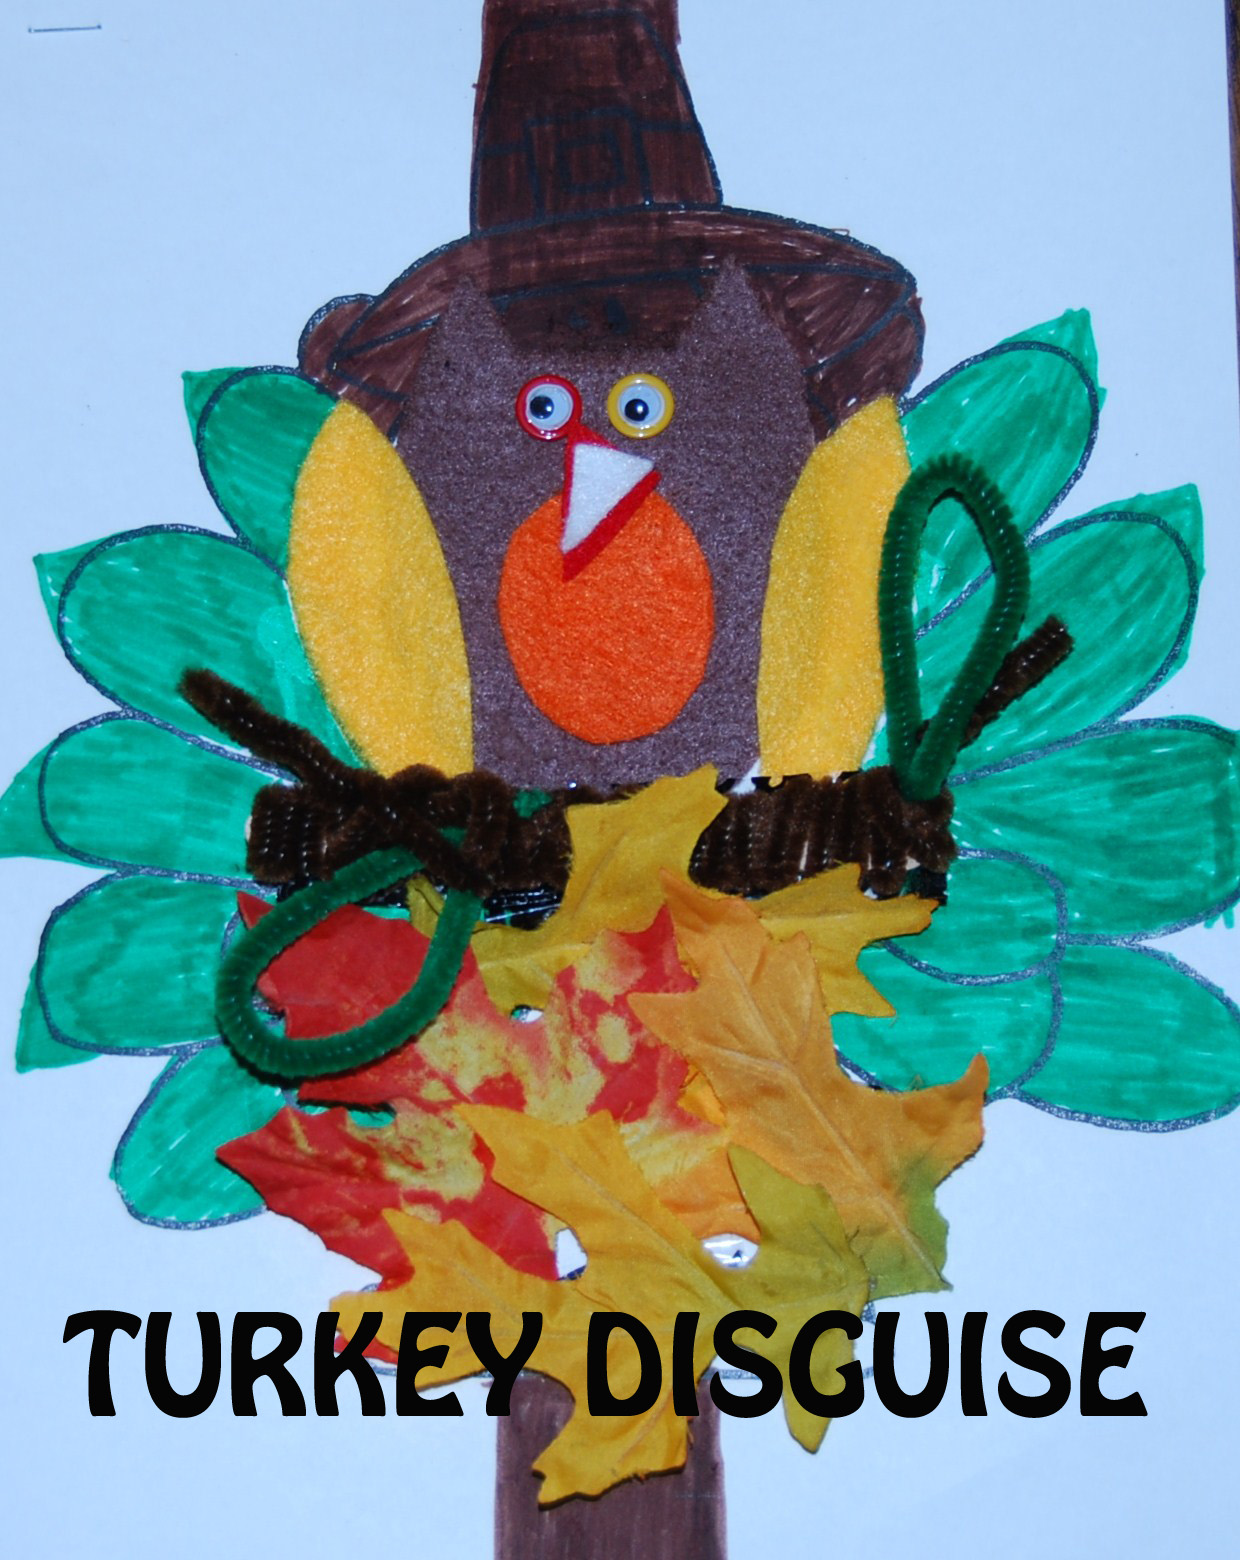 Turkey Disguise